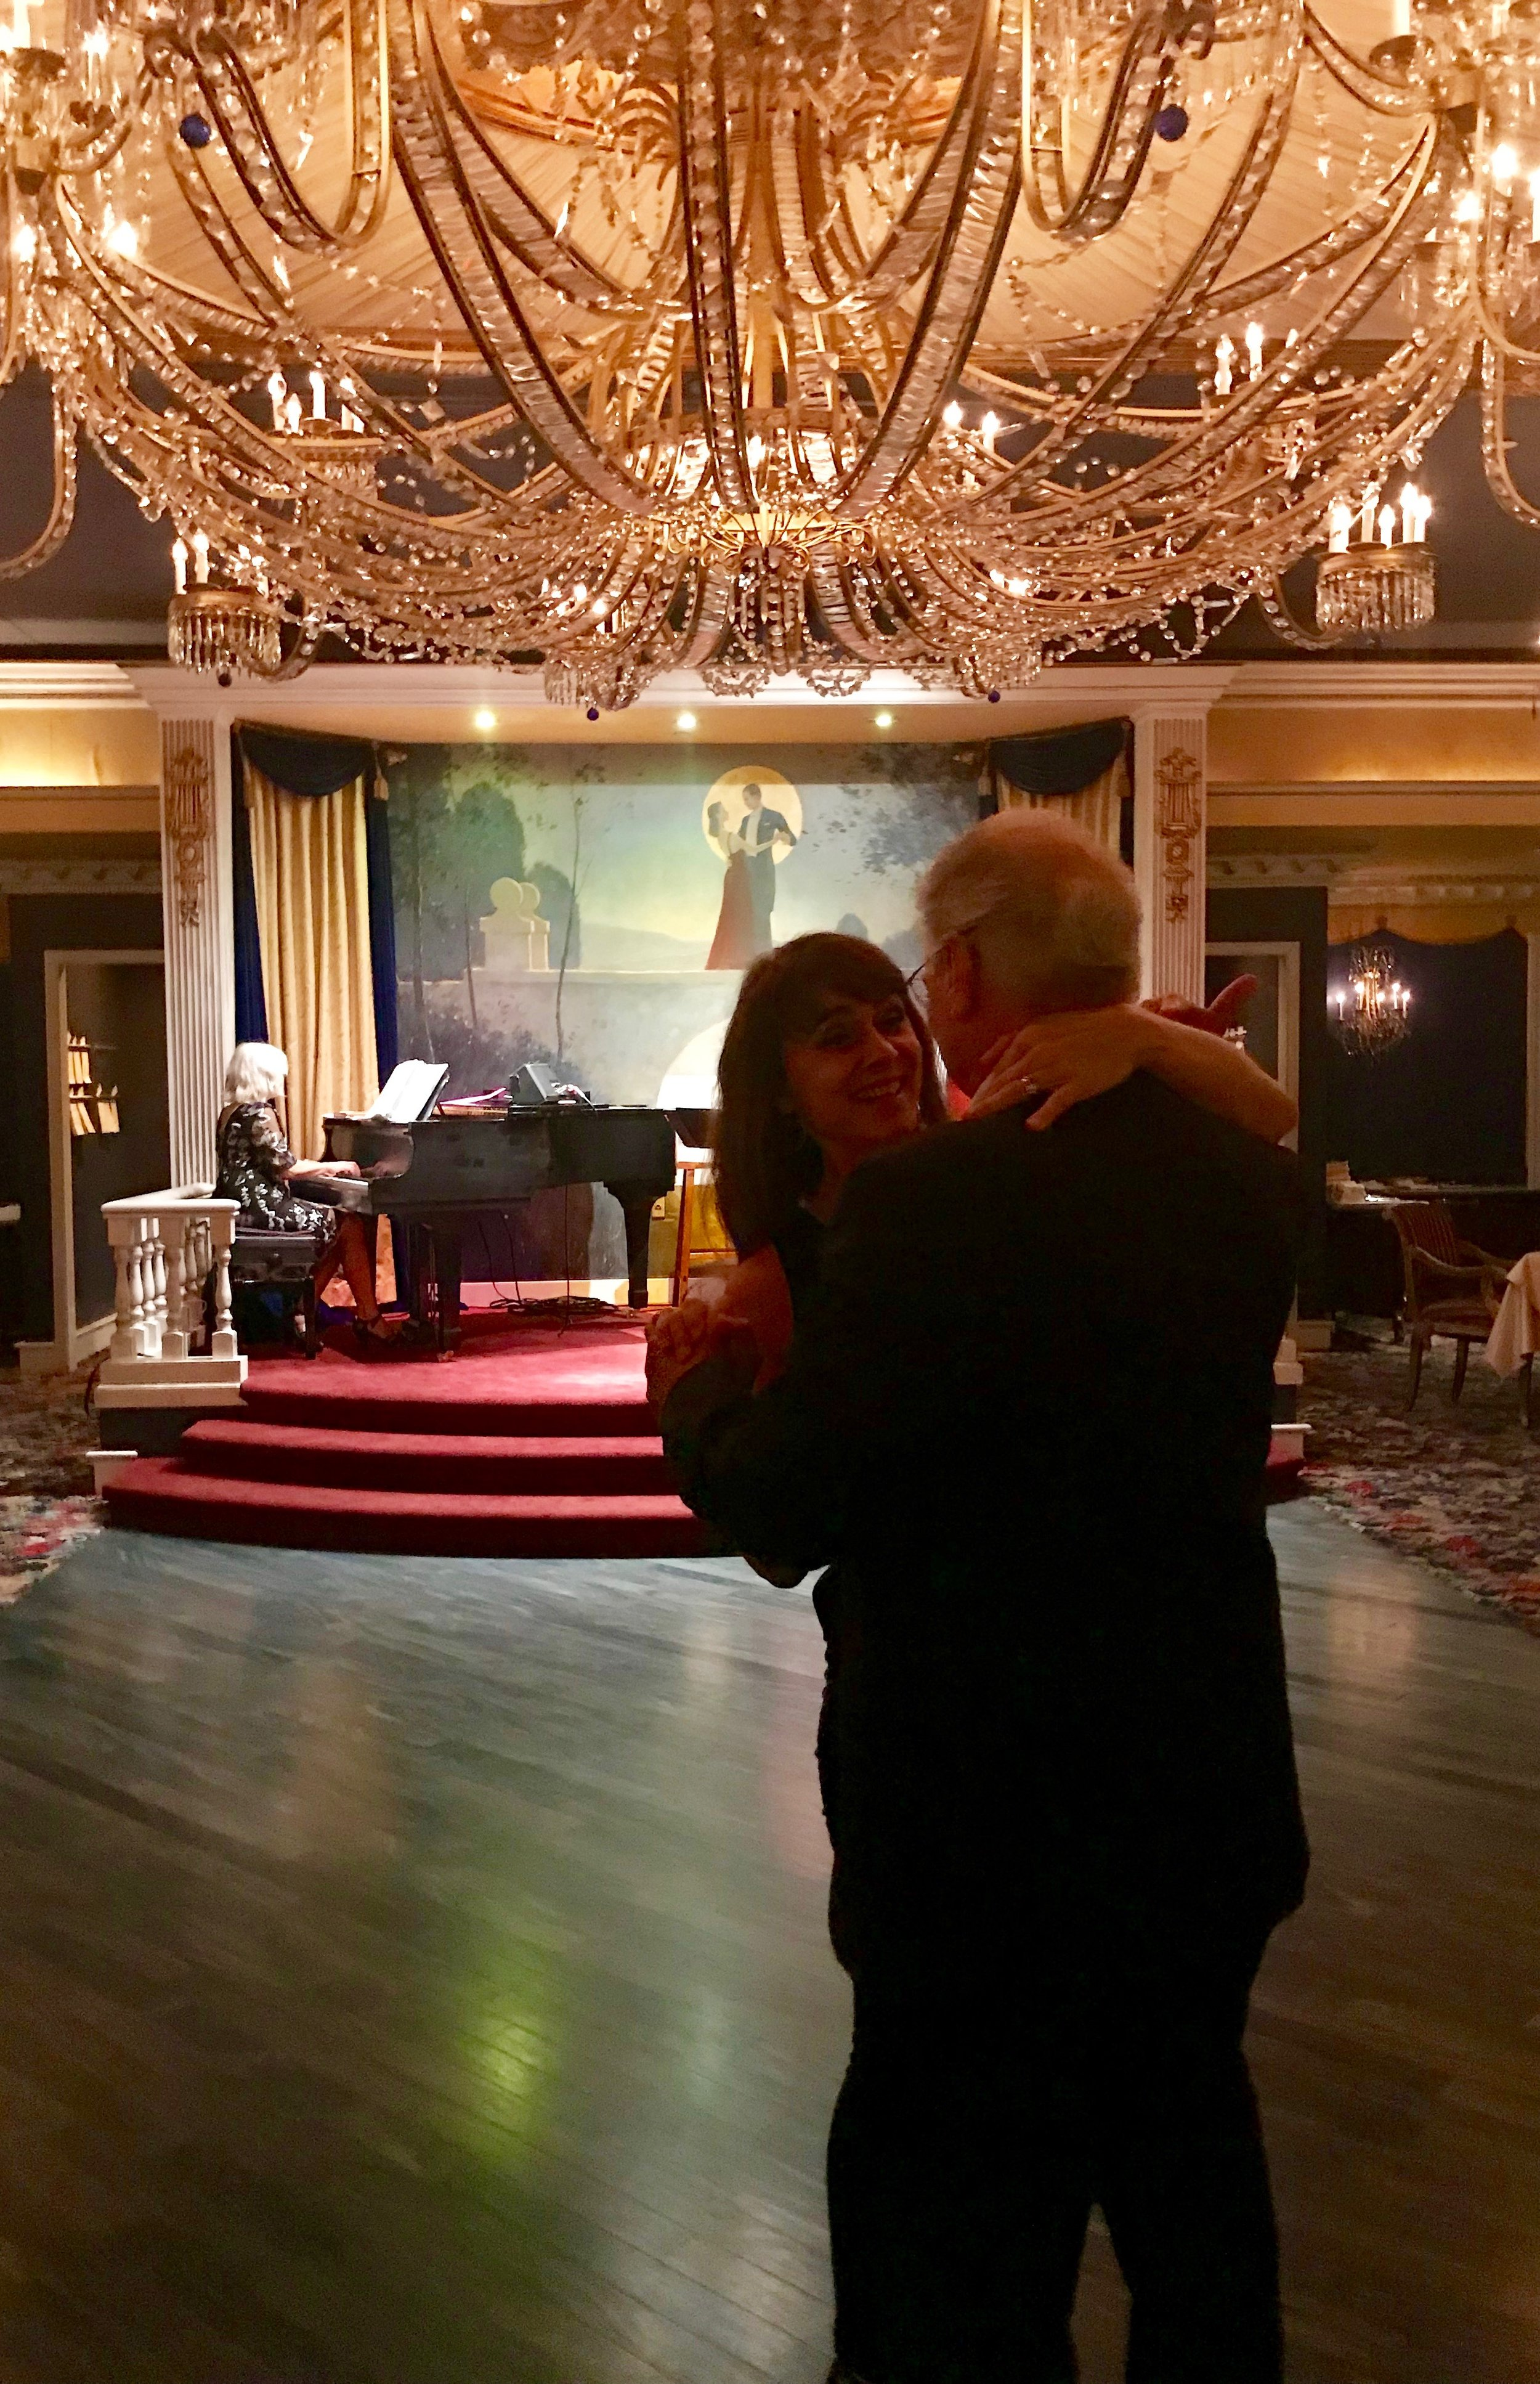 Dancing under the most amazing chandelier EVER!